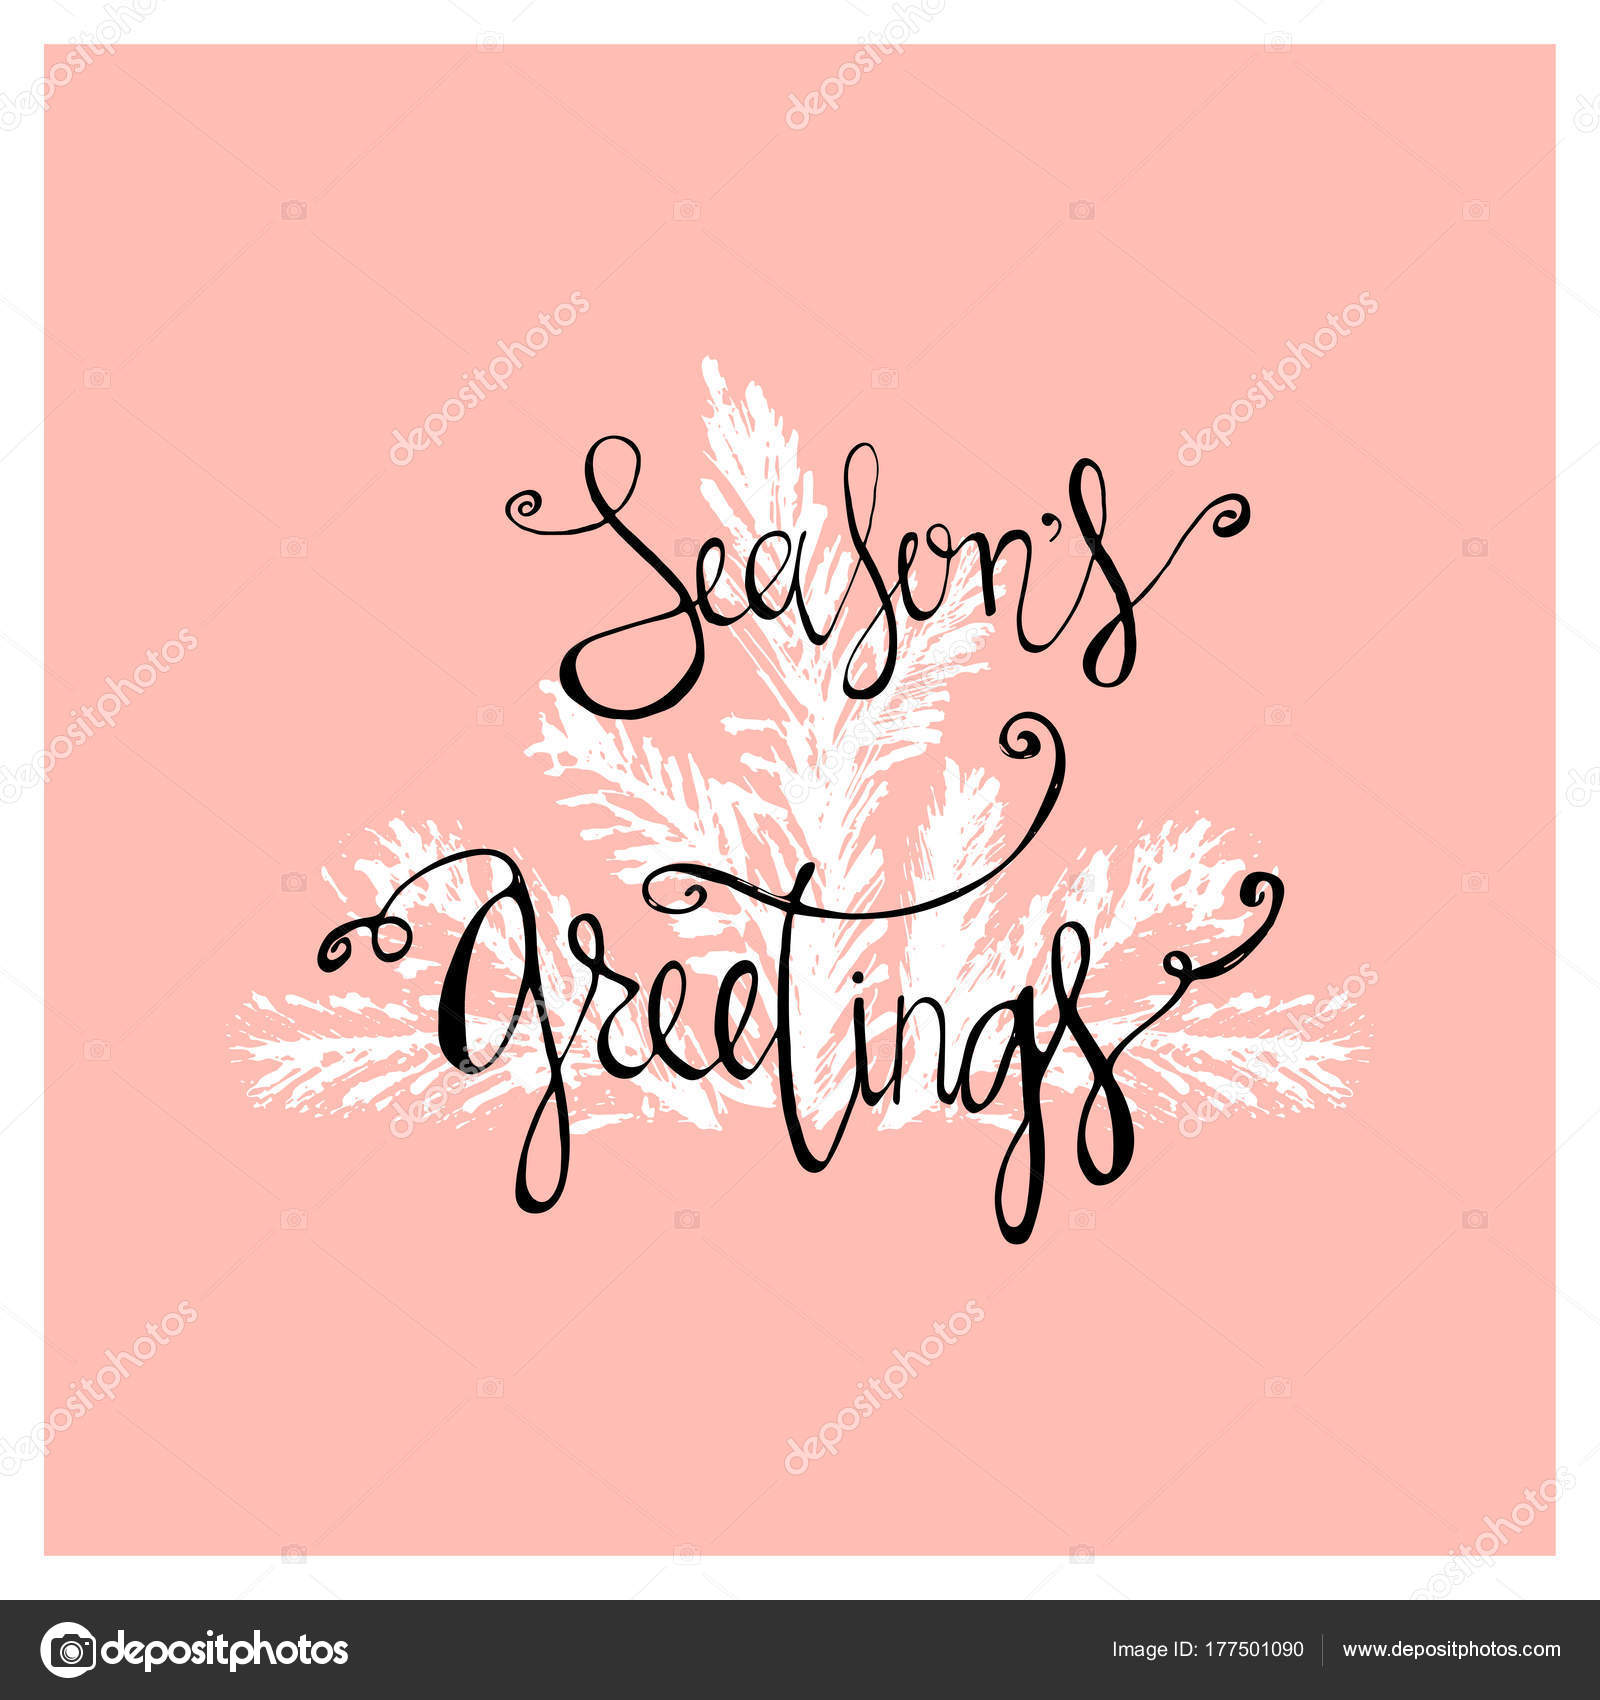 Seasons greetings abstract hand drawn calligraphy card design seasons greetings abstract hand drawn calligraphy card design creative artistic textures background for postcards invitations greeting cards banners kristyandbryce Choice Image